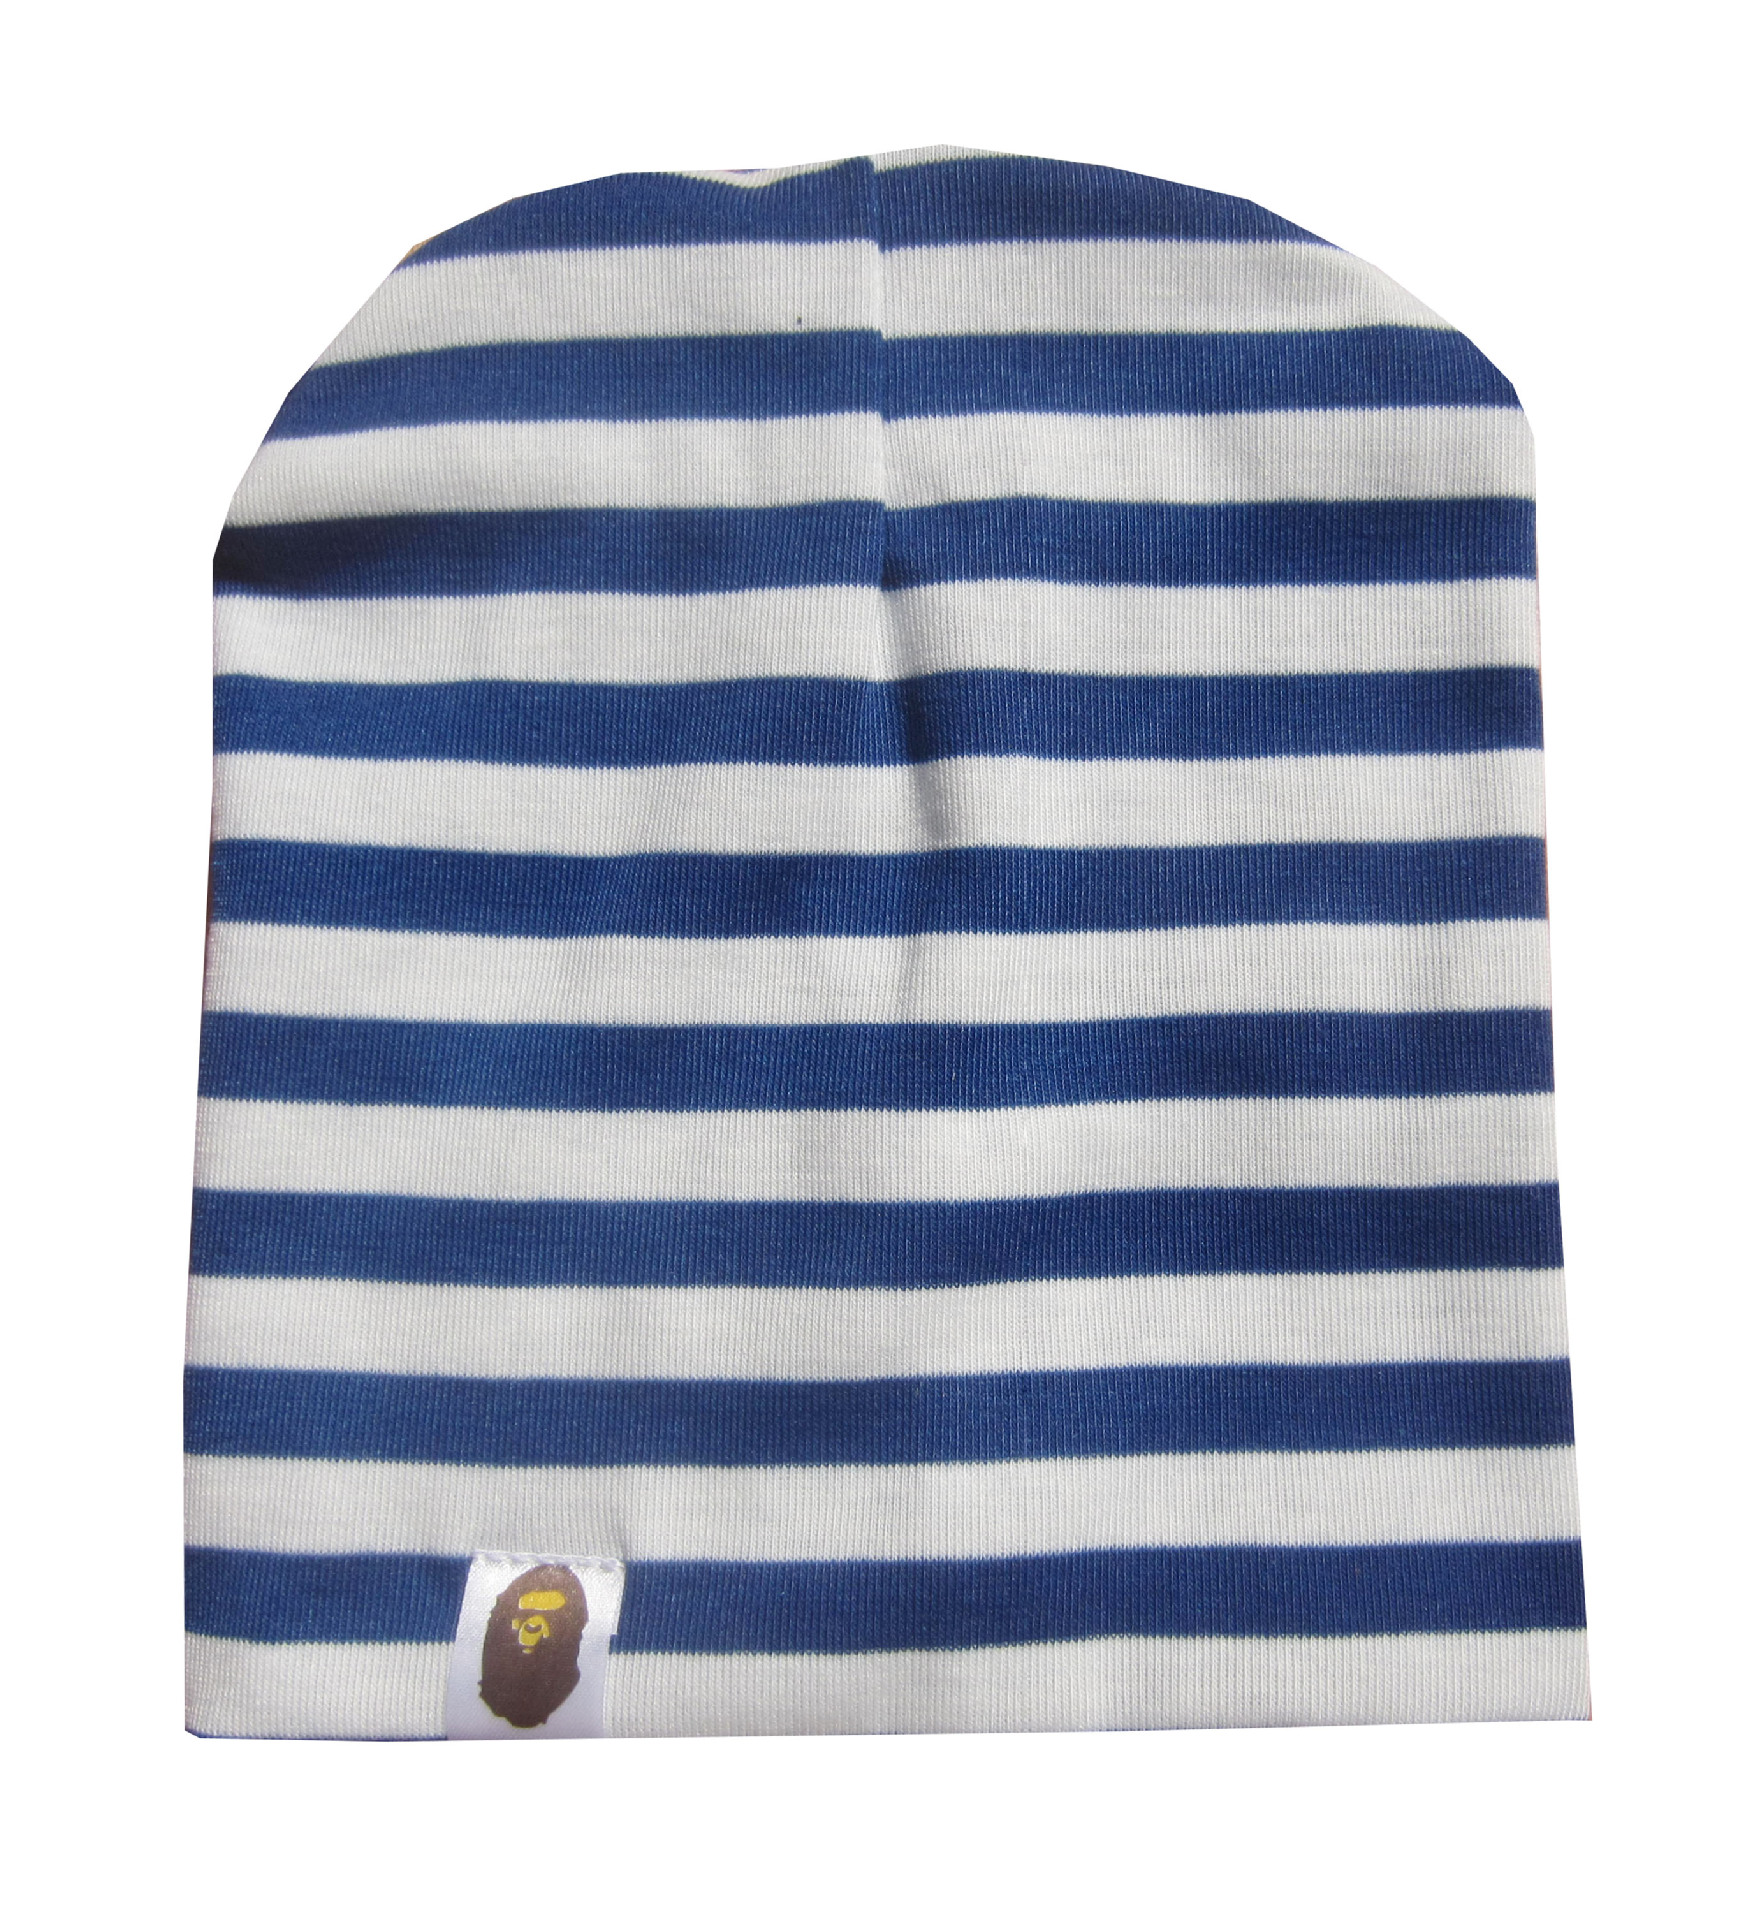 Baby Cute Stripe Cotton Hat Crochet Beanie Cap Boy Girls Infant Toddler Kids